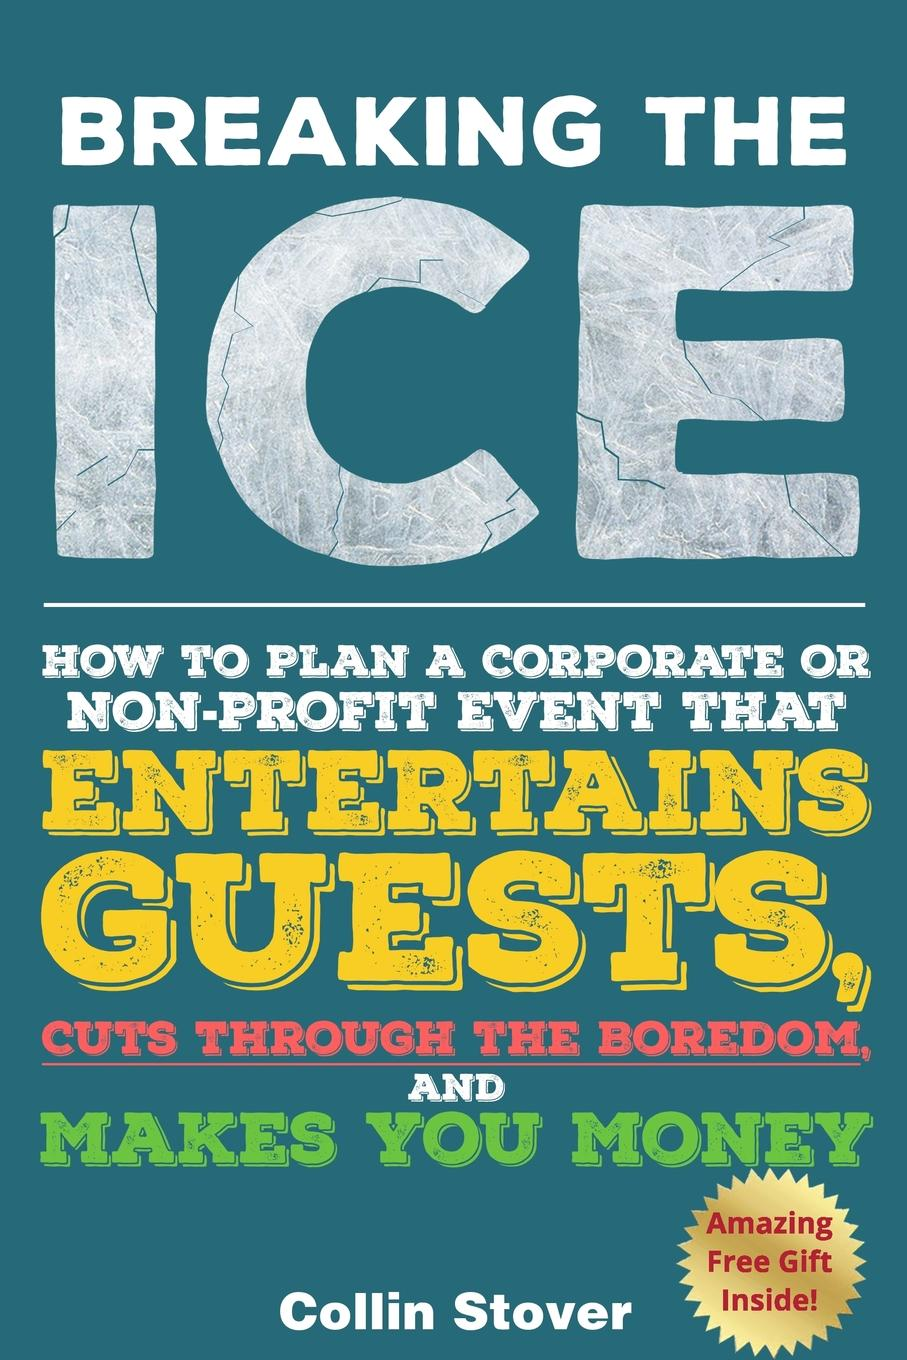 Collin Stover Breaking the Ice. How to Plan a Corporate or Non-Profit Event that Entertains Guests, Cuts Through the Boredom, and Makes You Money judy allen event planning the ultimate guide to successful meetings corporate events fundraising galas conferences conventions incentives and other special events